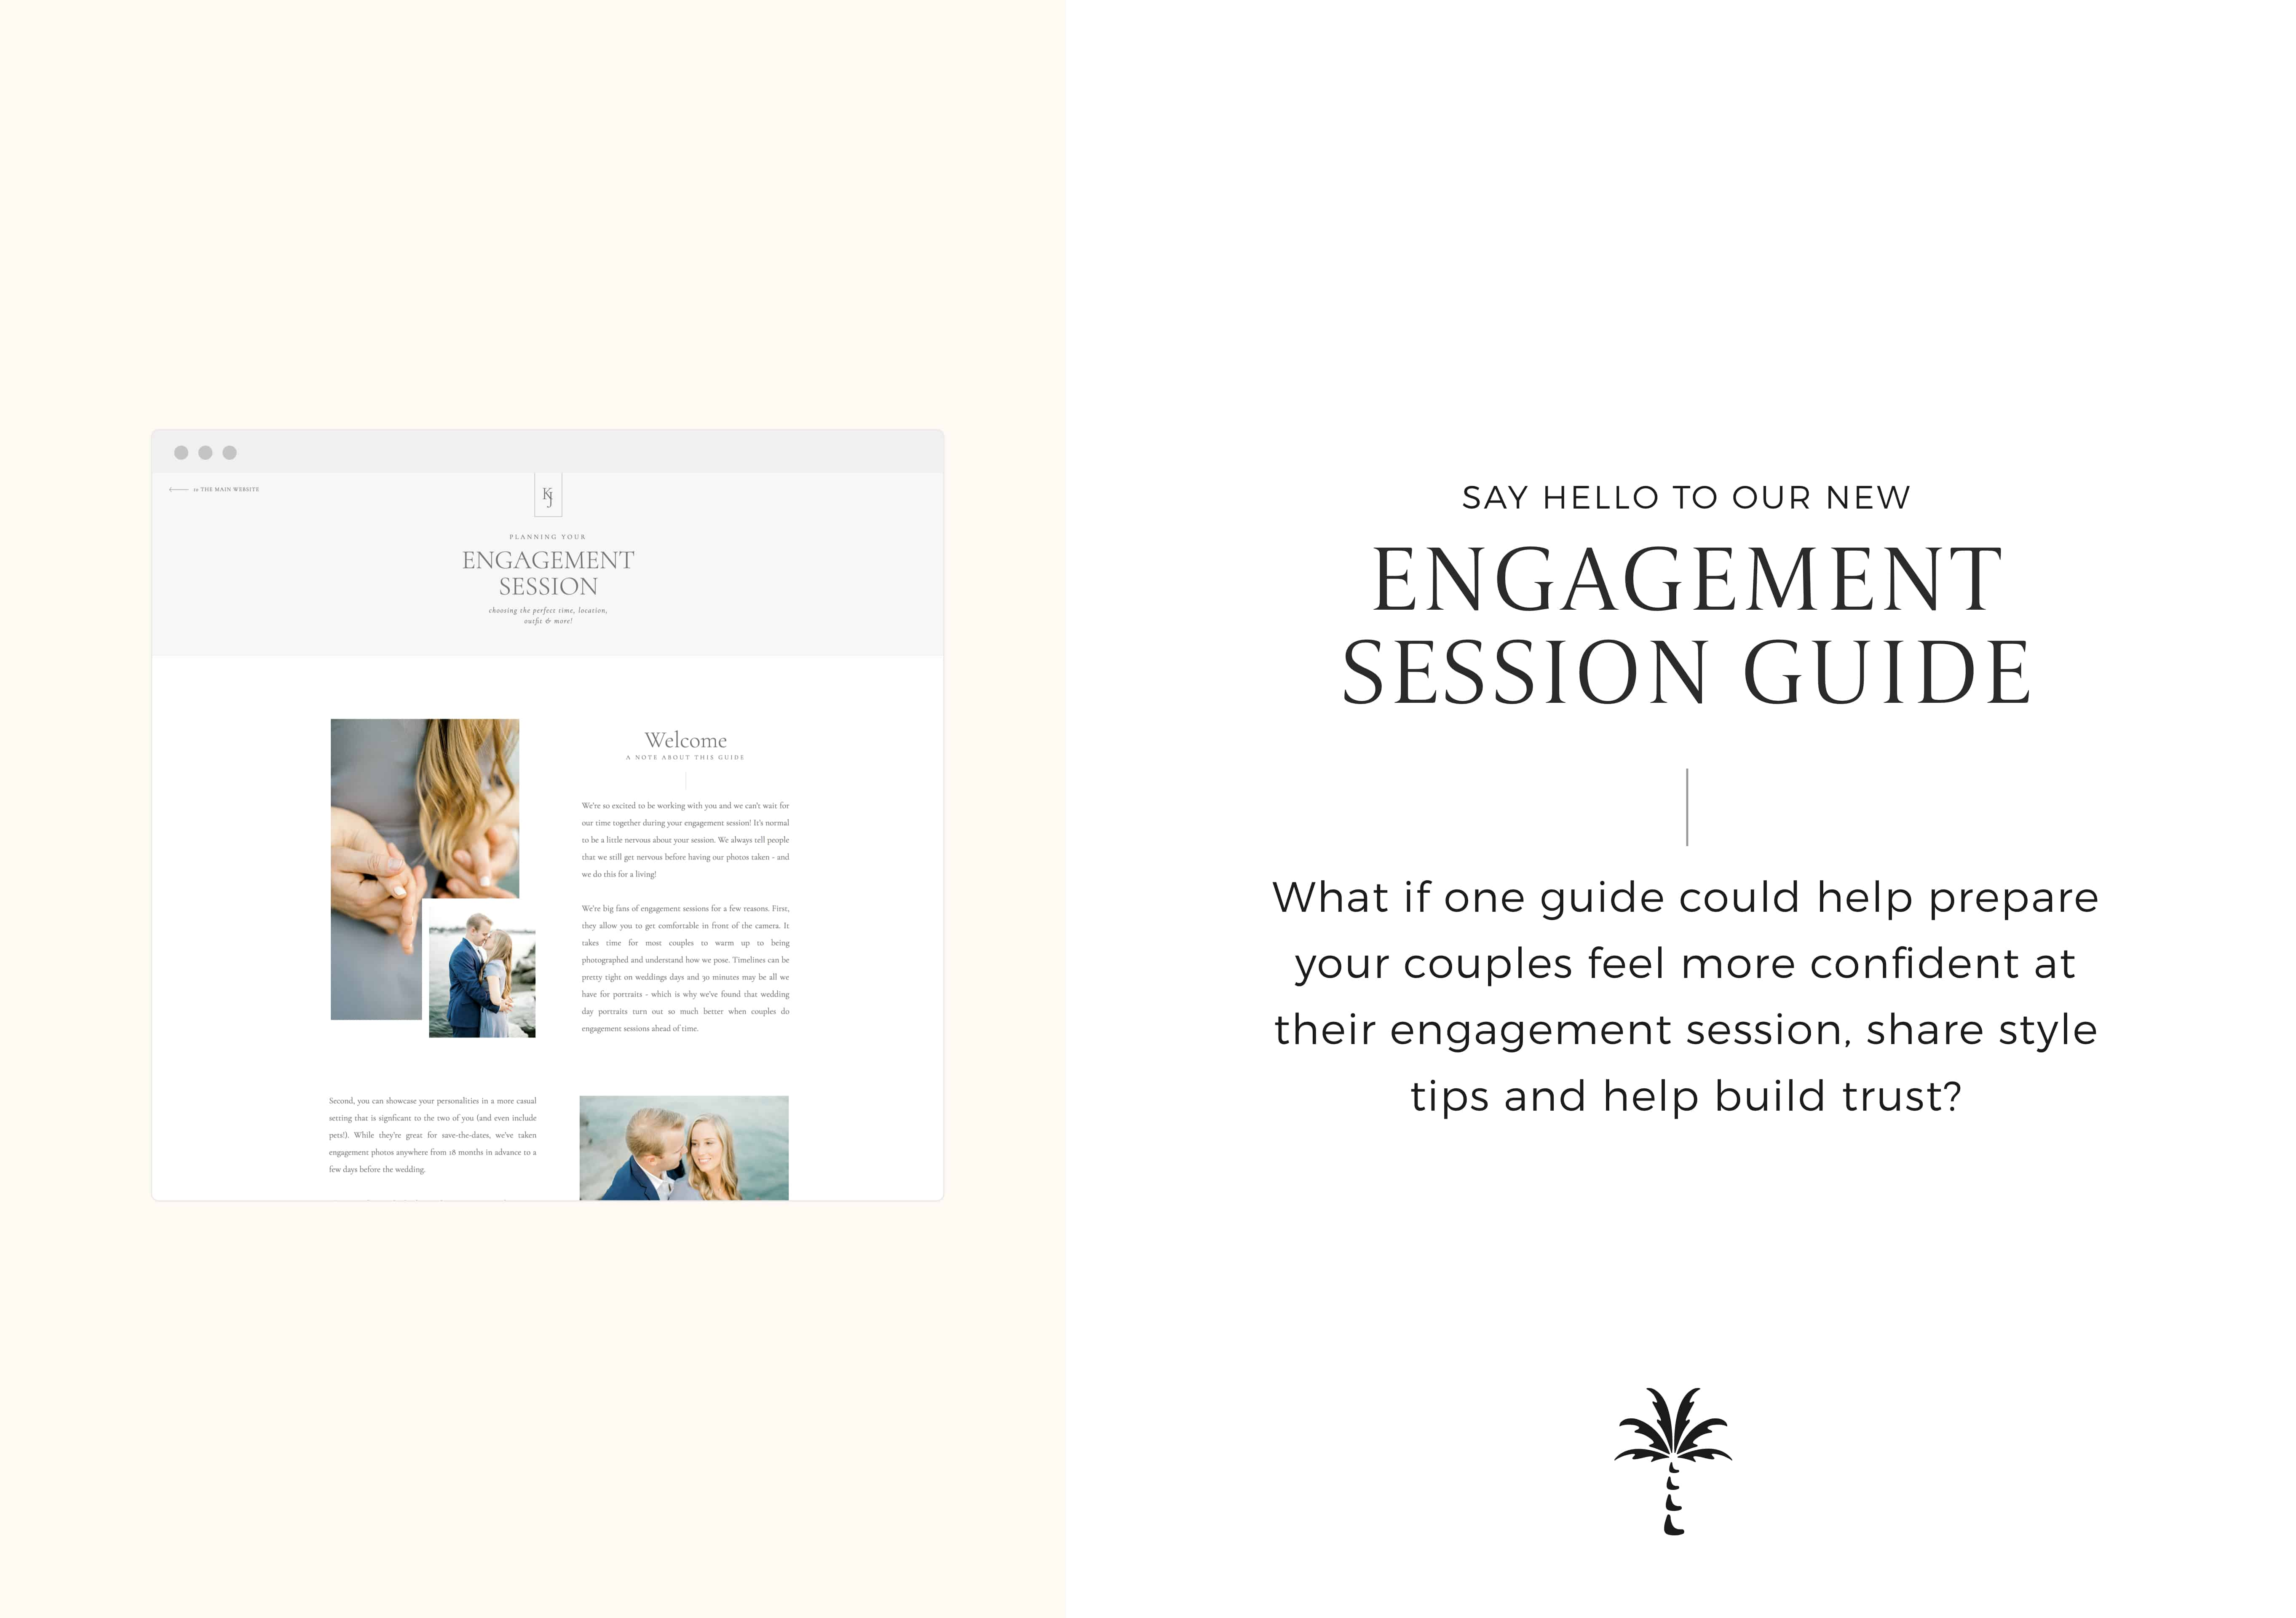 Engagement Session Style Guide Template - What if one guide could help your couples feel more confident at their engagement session, share style tips and help build trust? | Via Davey & Krista